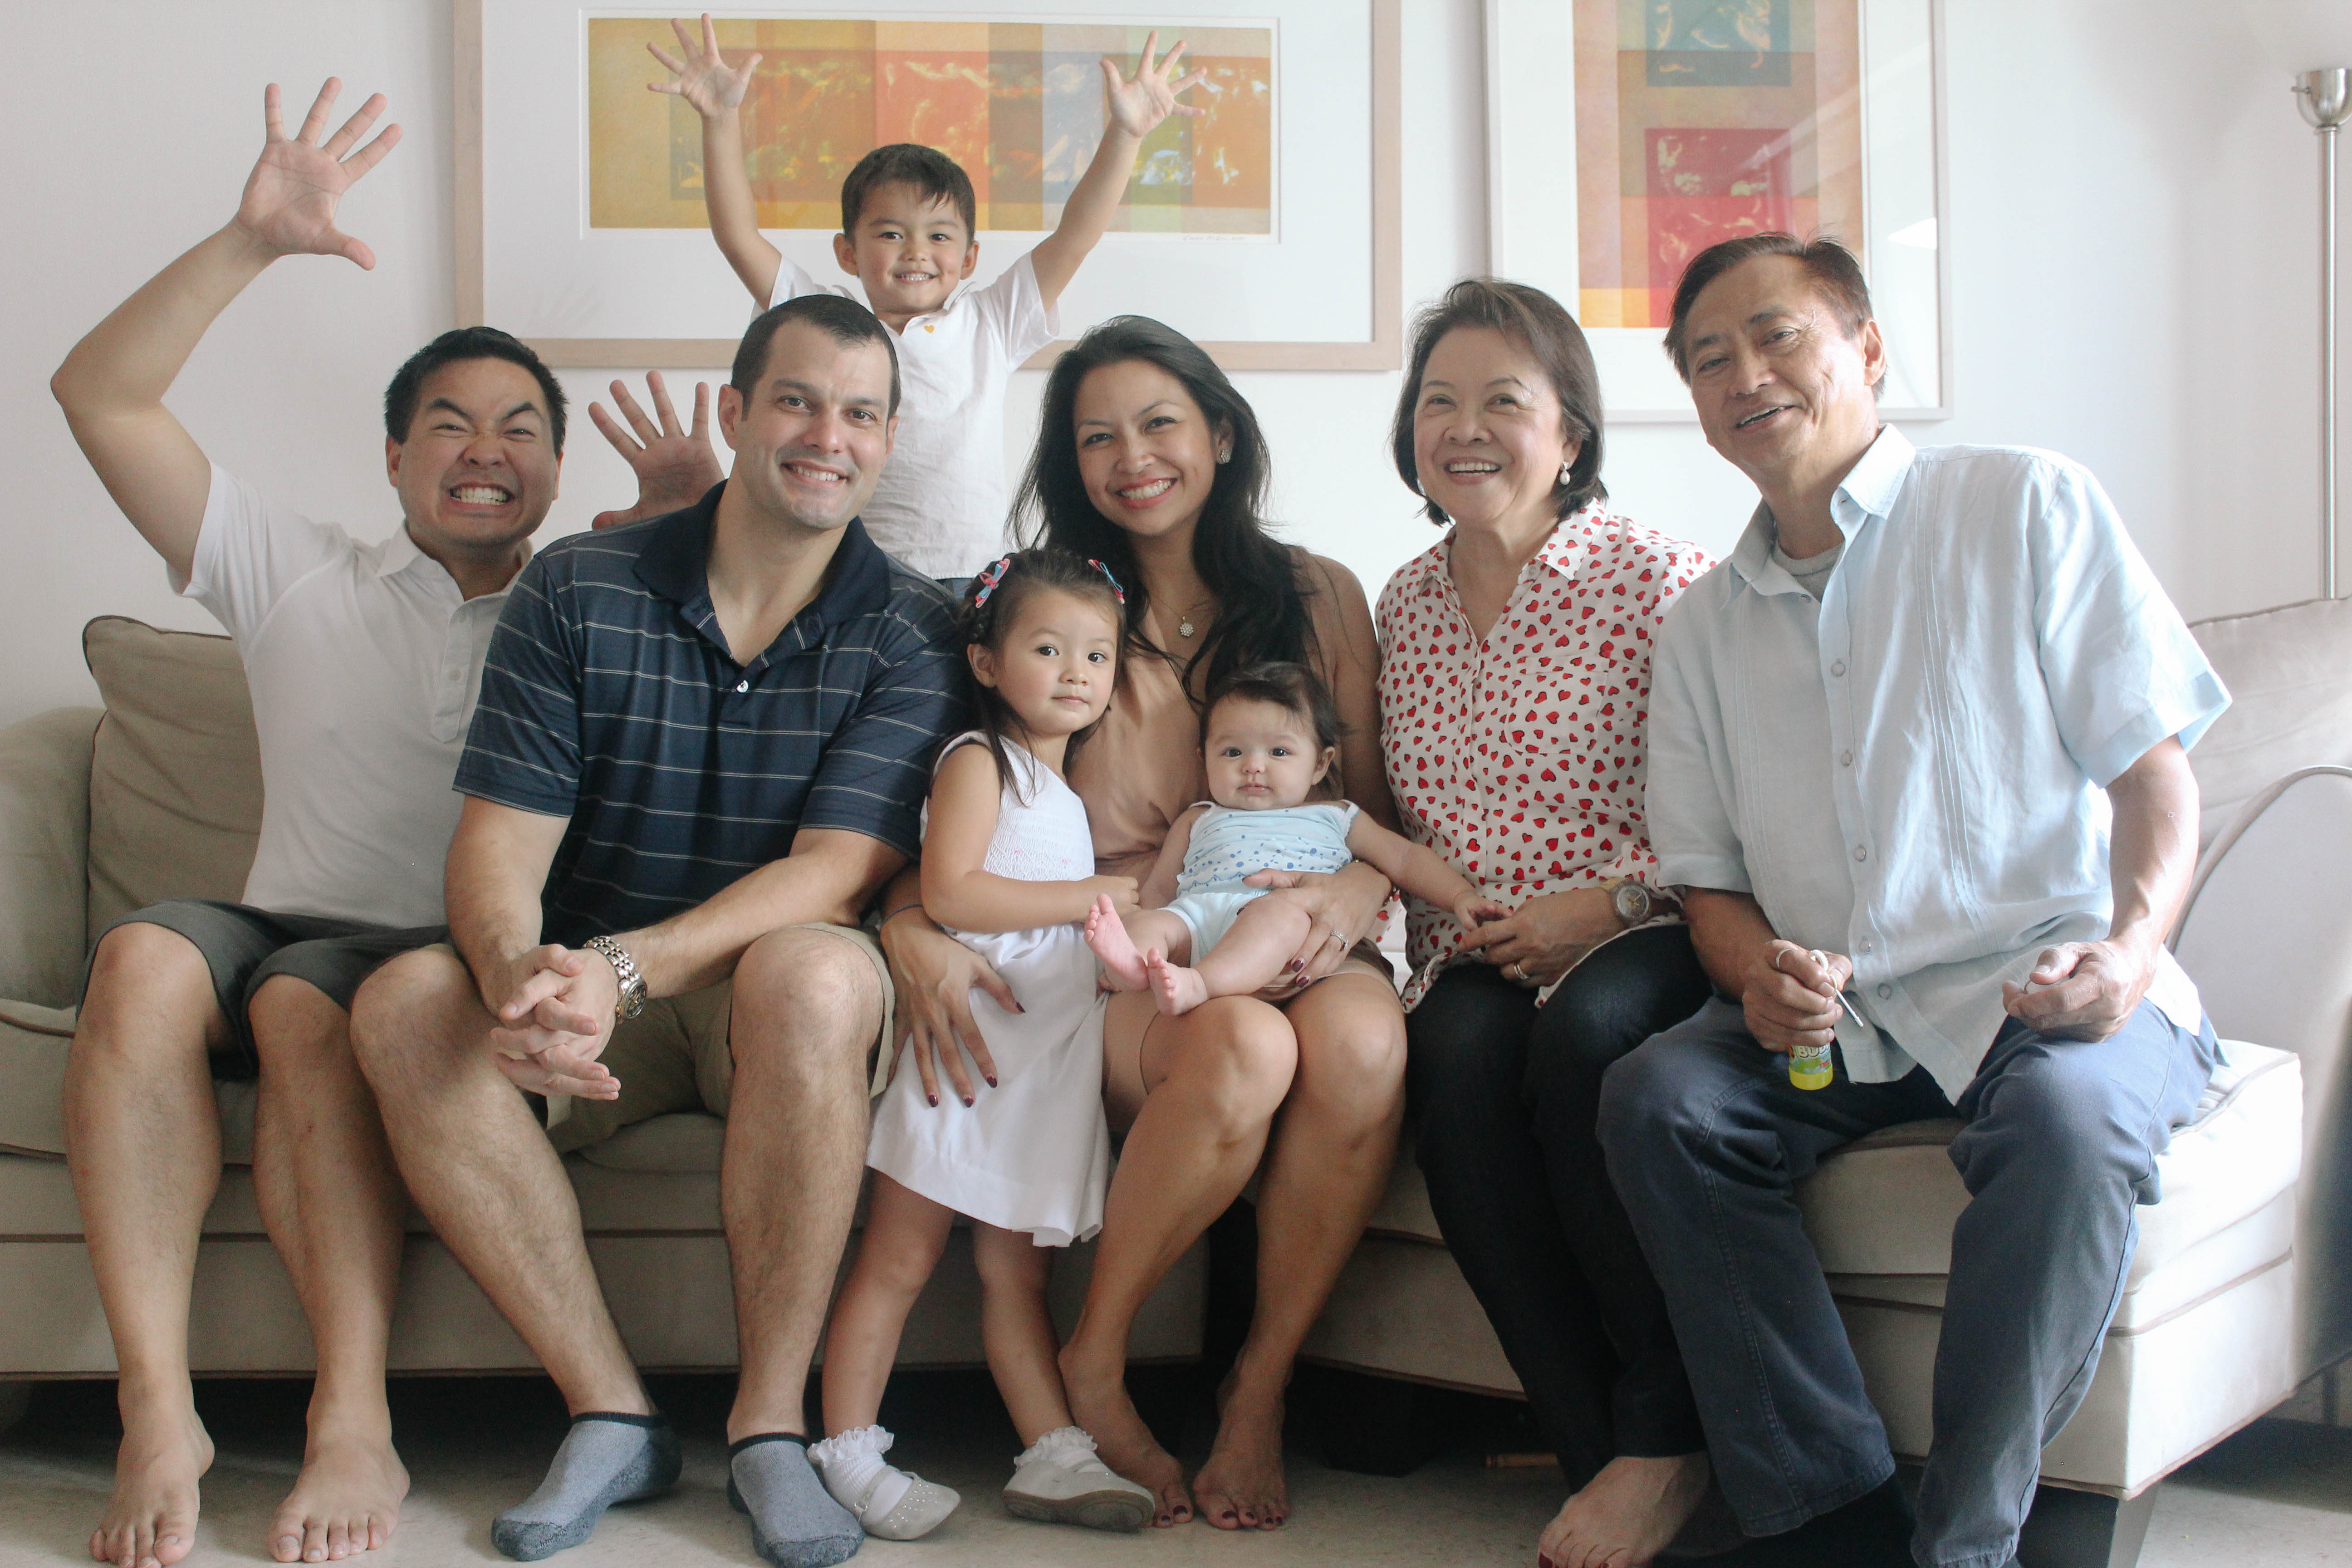 Claire's brother Justin, husband Alex, son Carlos, daughters Isa And Sofia, and parents Lenore and Jose. All photos provided by Nina Terol